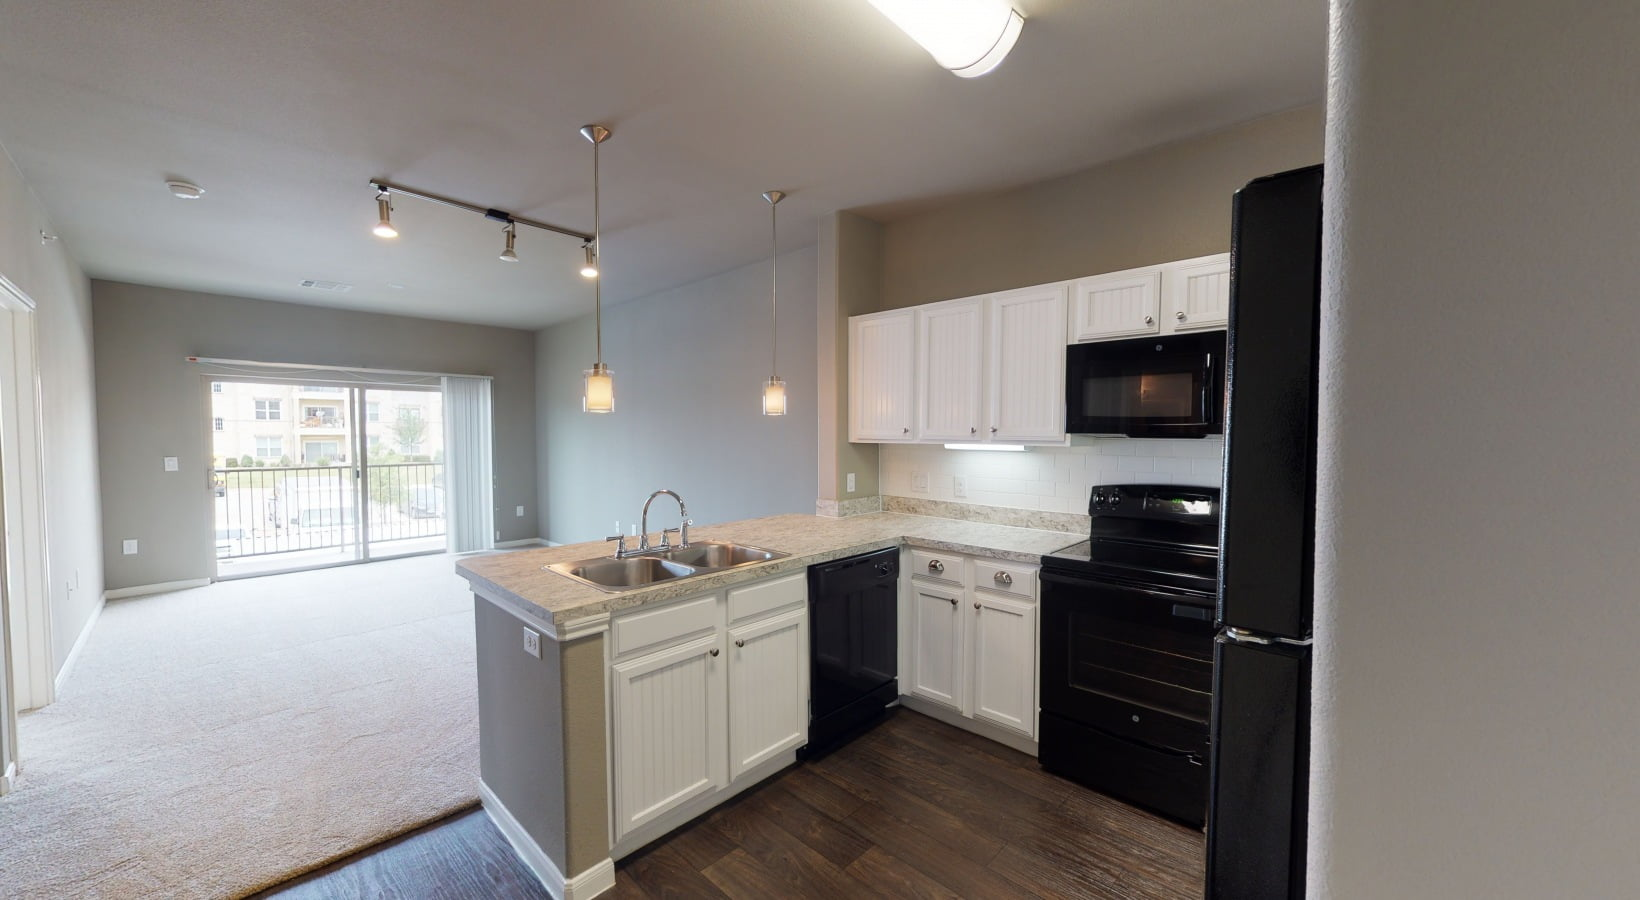 apartments in lewisville texas for rent